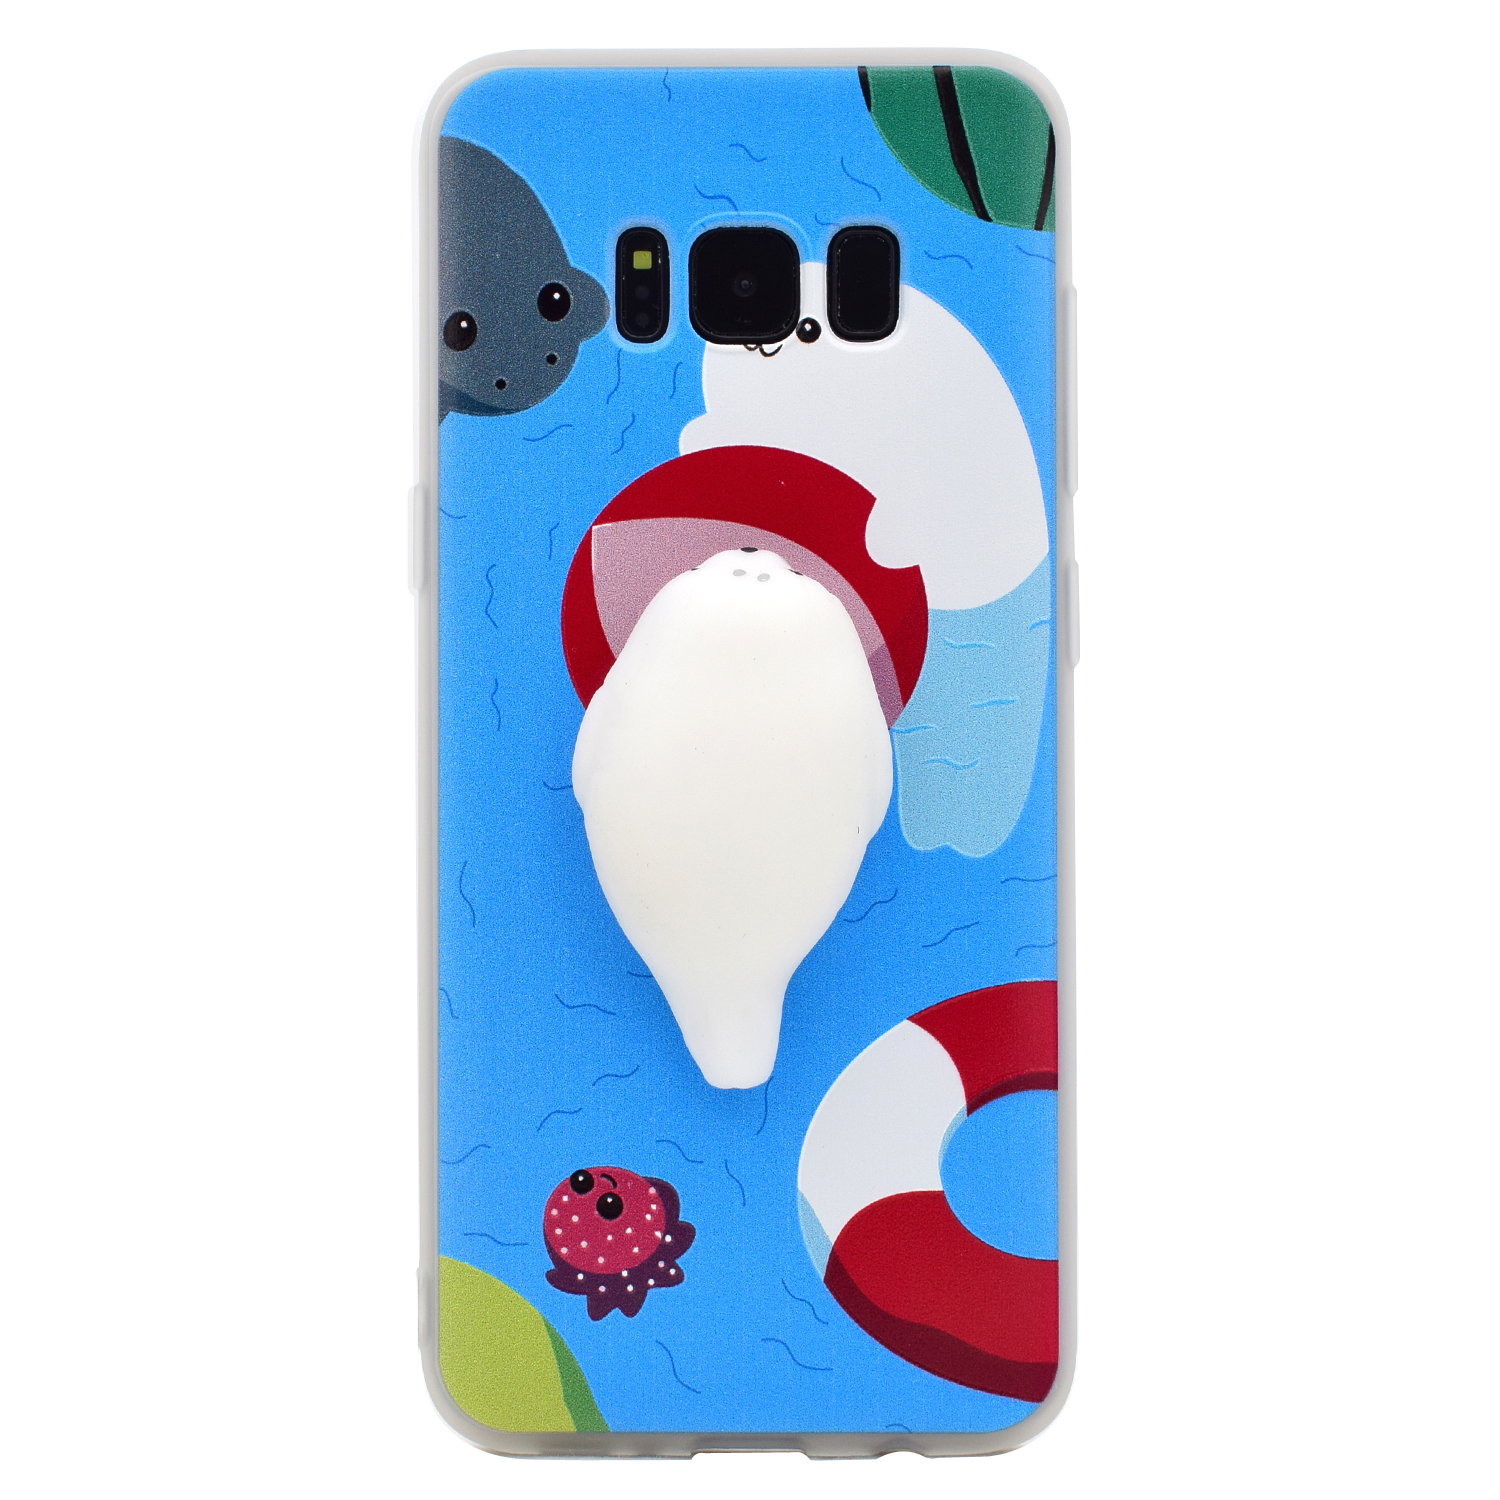 Squishy Soft Silicone Gel TPU Phone Case Cover For Samsung Galaxy Note 8/S8 Plus eBay